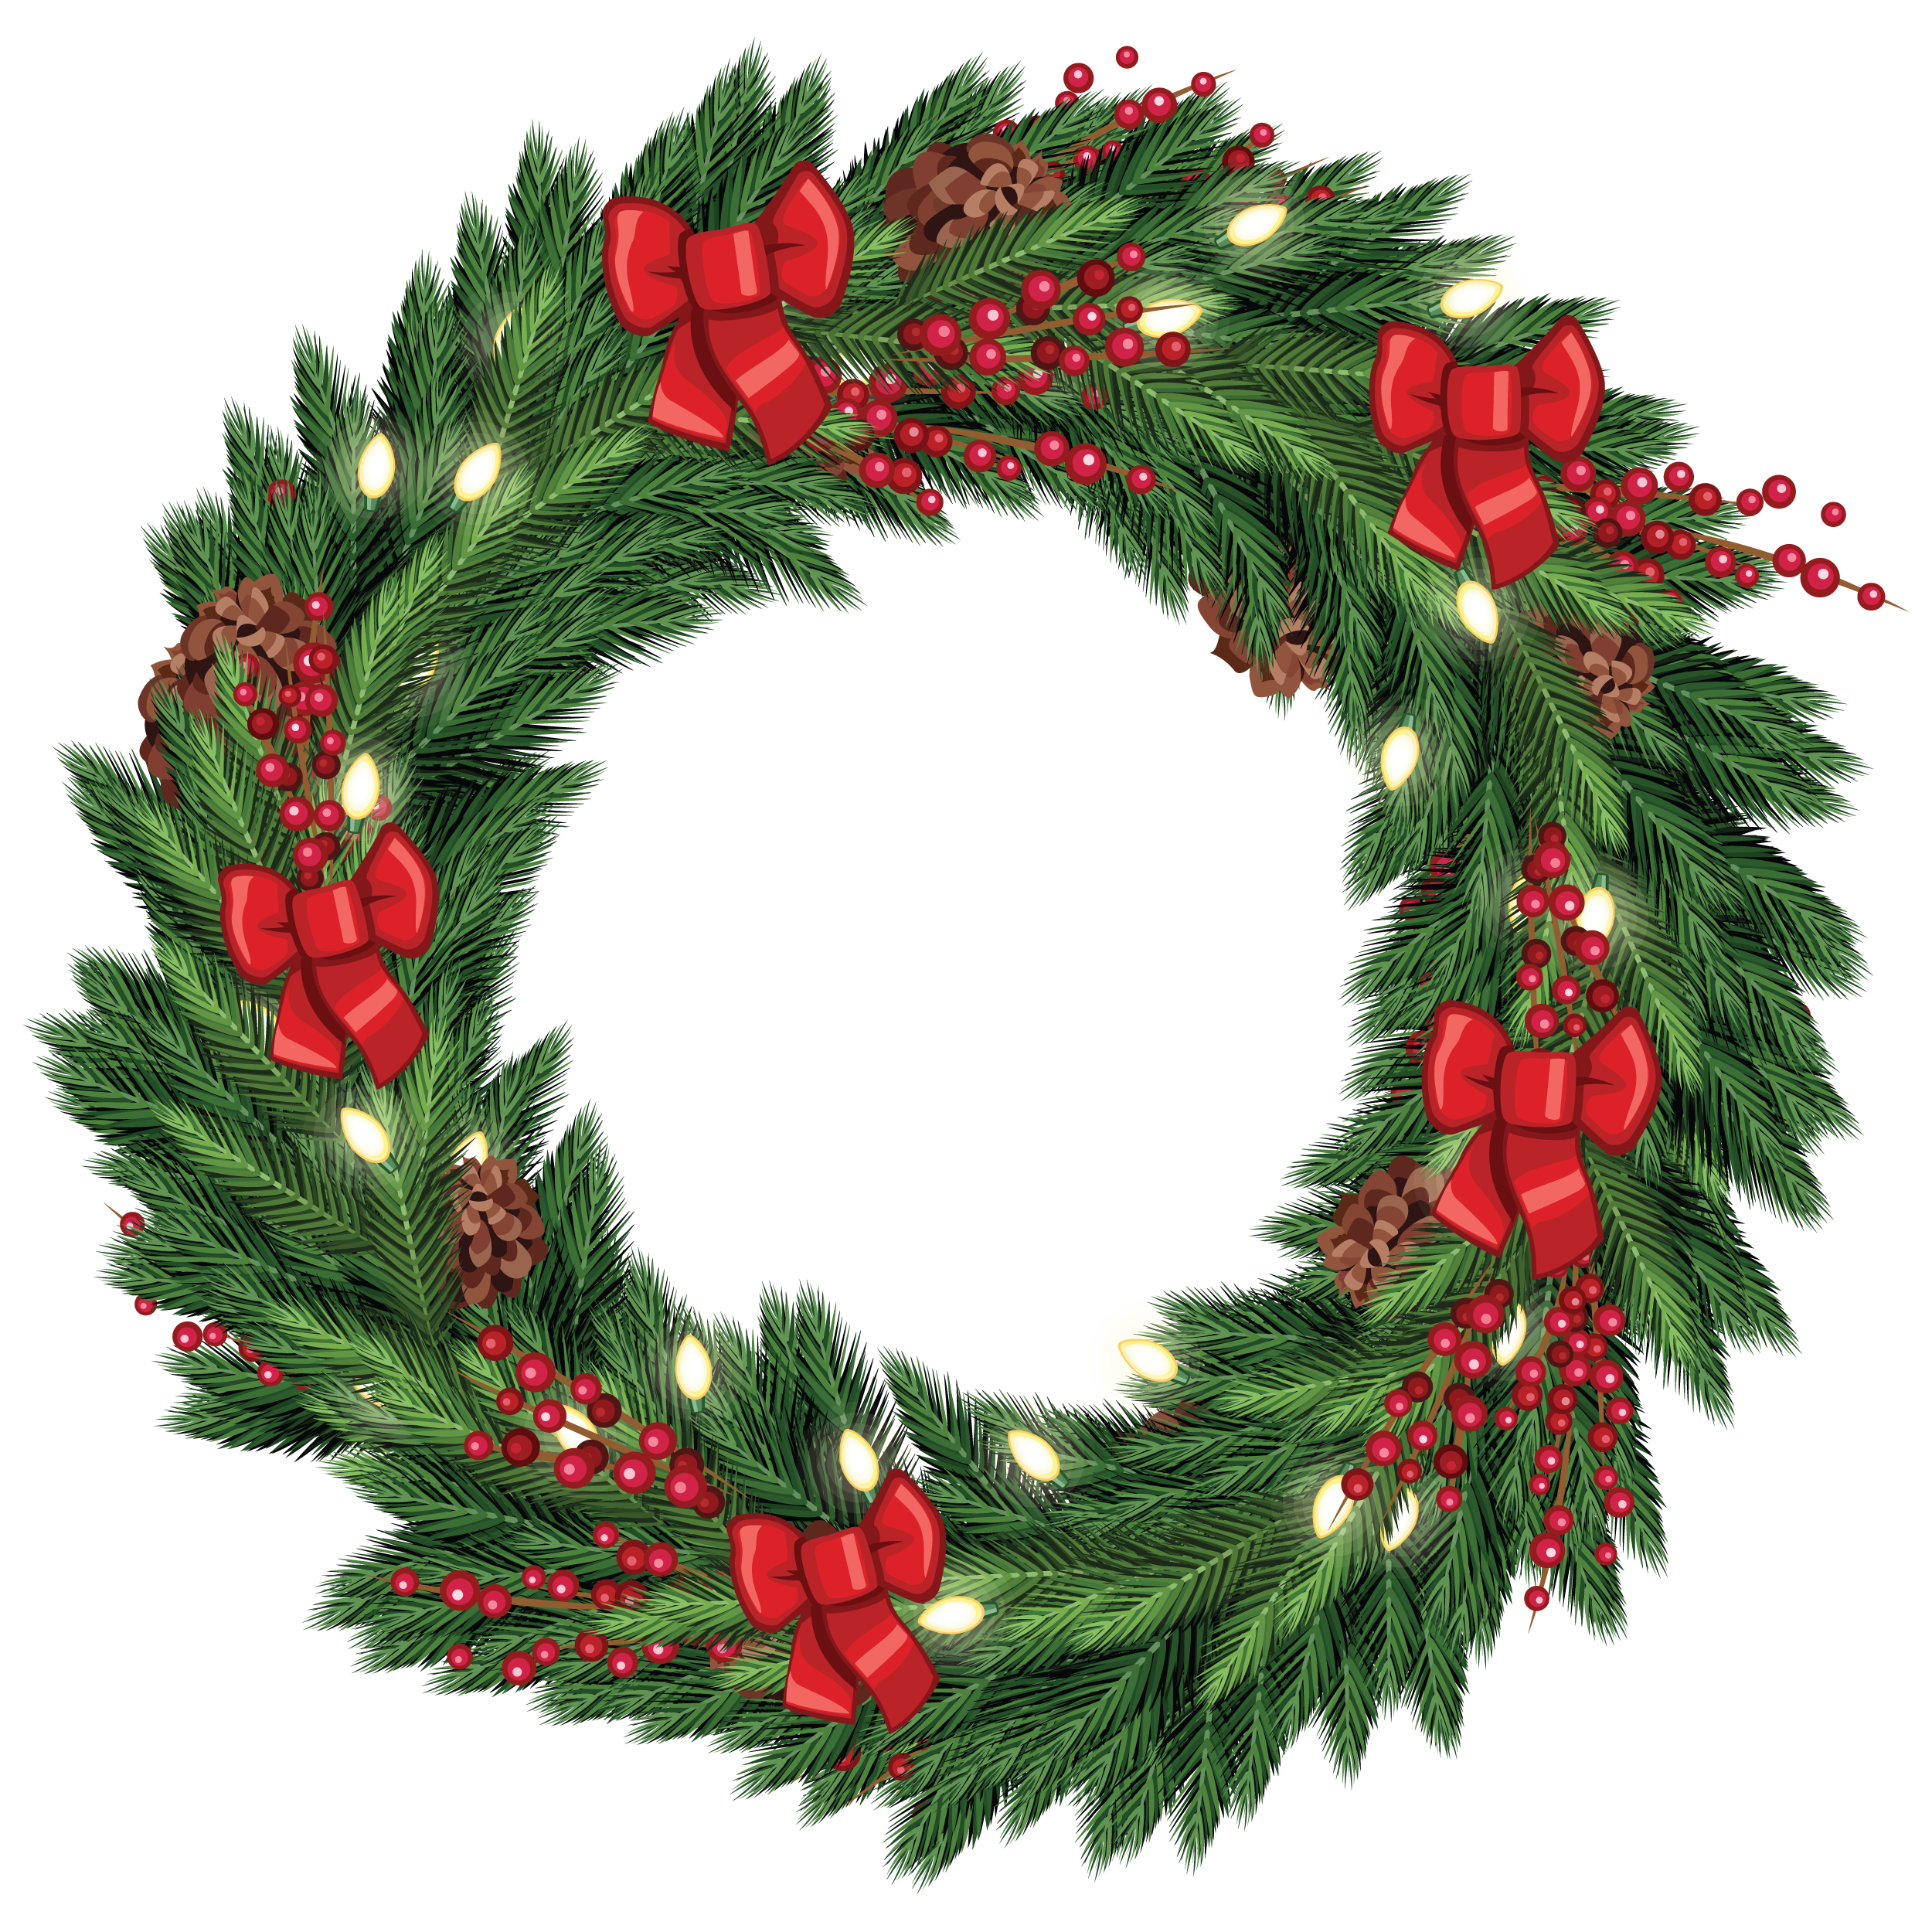 Christmas Wreath Graphic From Tradigitalart Pictures 5740